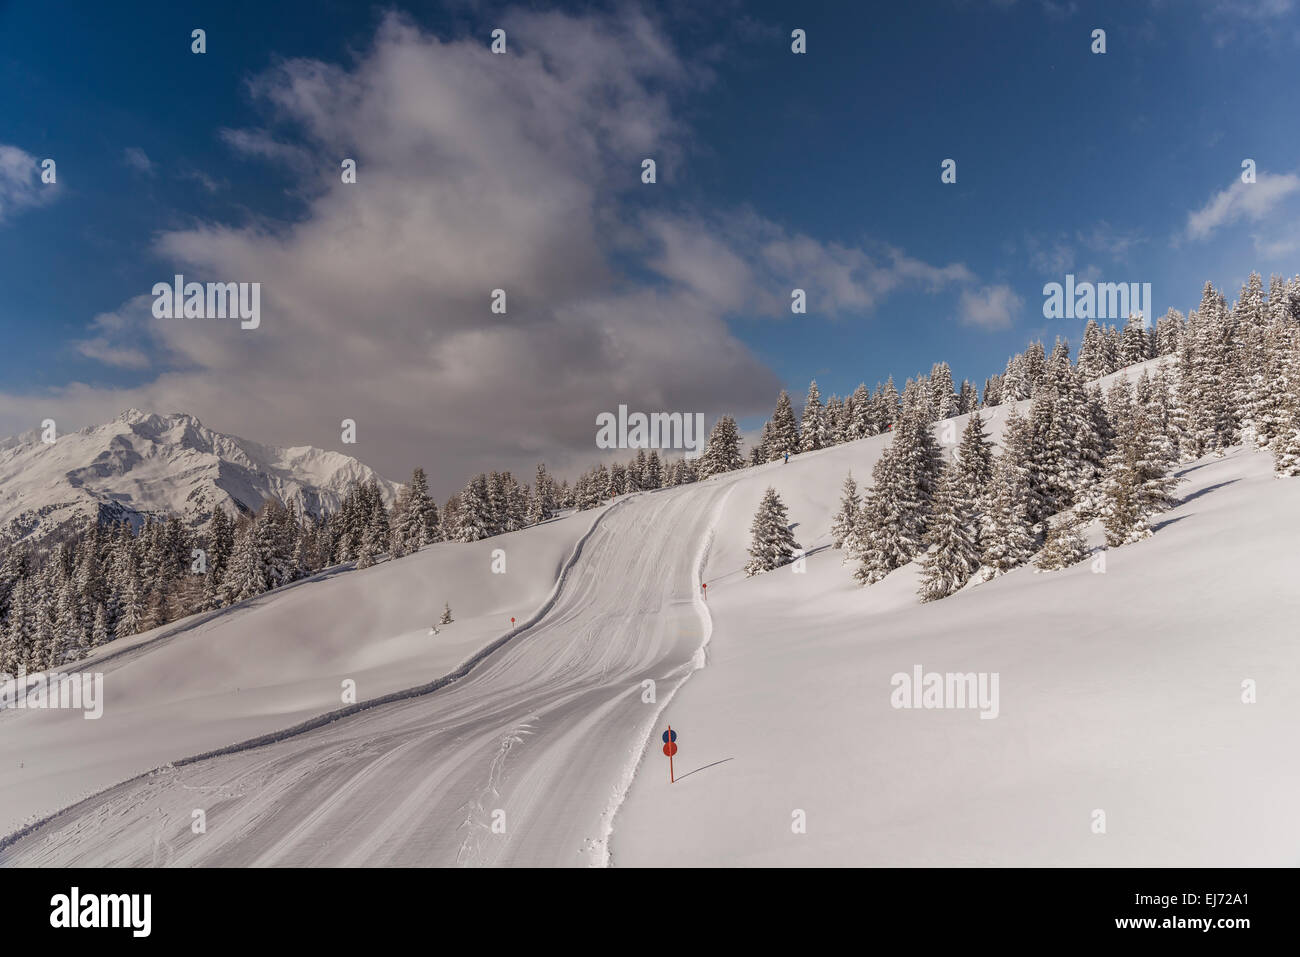 Ski piste, winter forest, Venet, Zams, Verwall group at the back, Tyrol, Austria - Stock Image